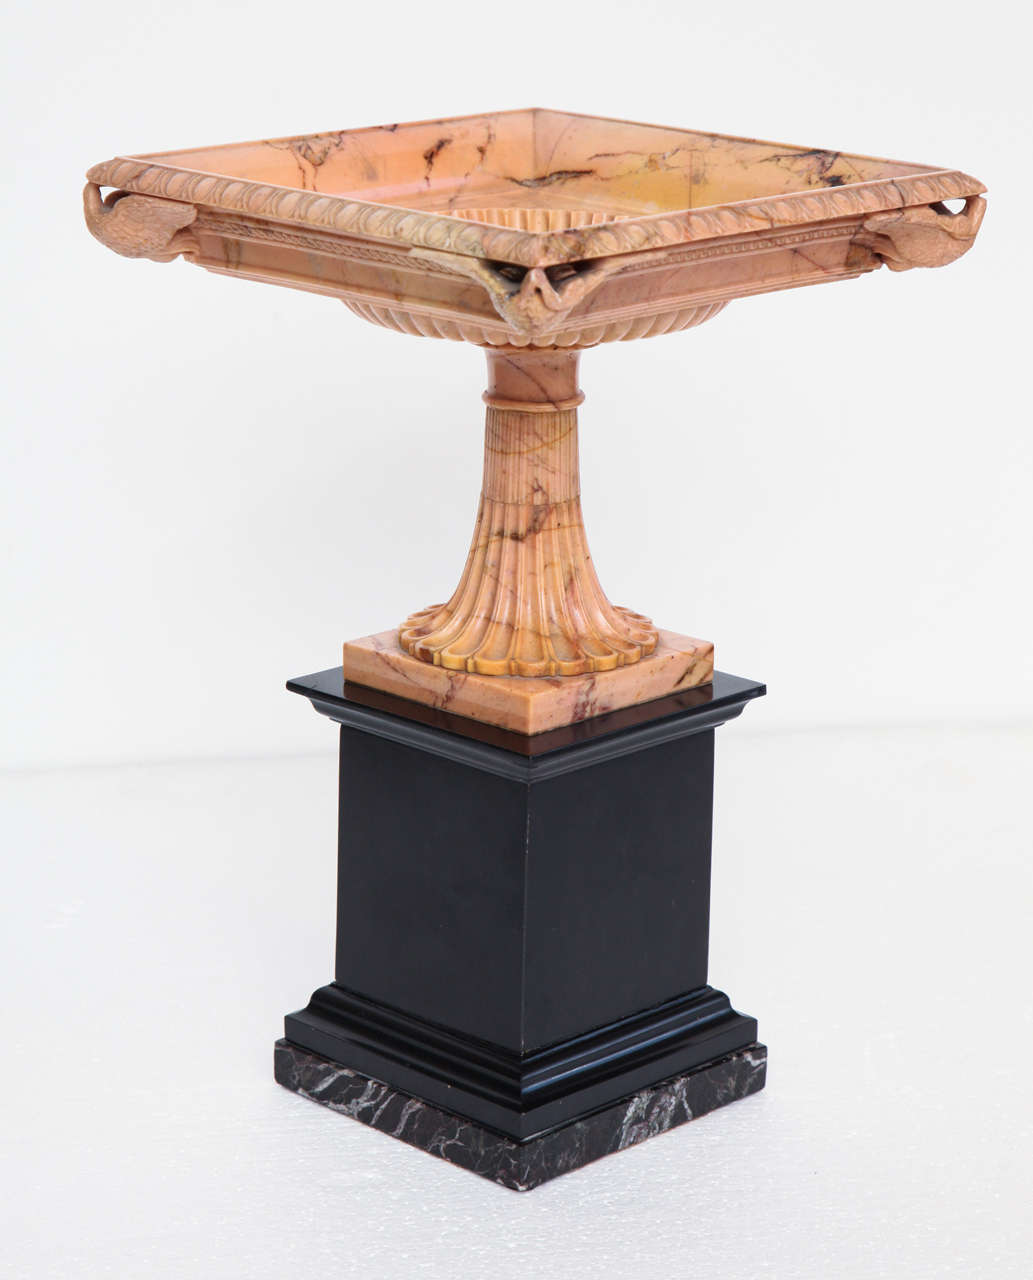 Grand Tour A Superb Sienna Marble 19th Century Tazza on a Marble Plinth For Sale